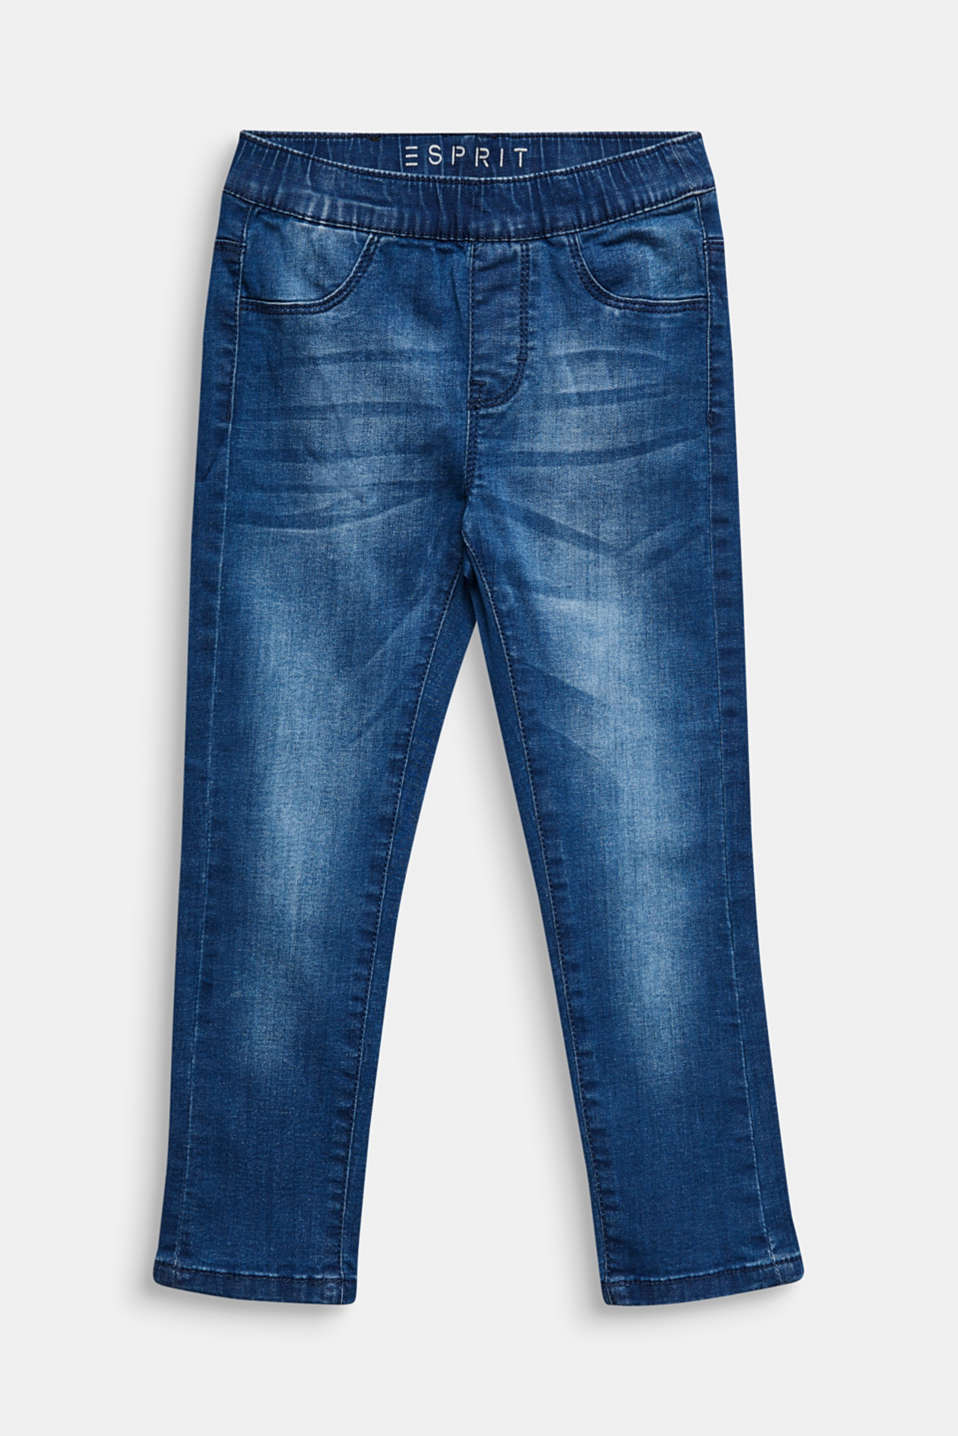 Esprit - Jegging met garment-washed look